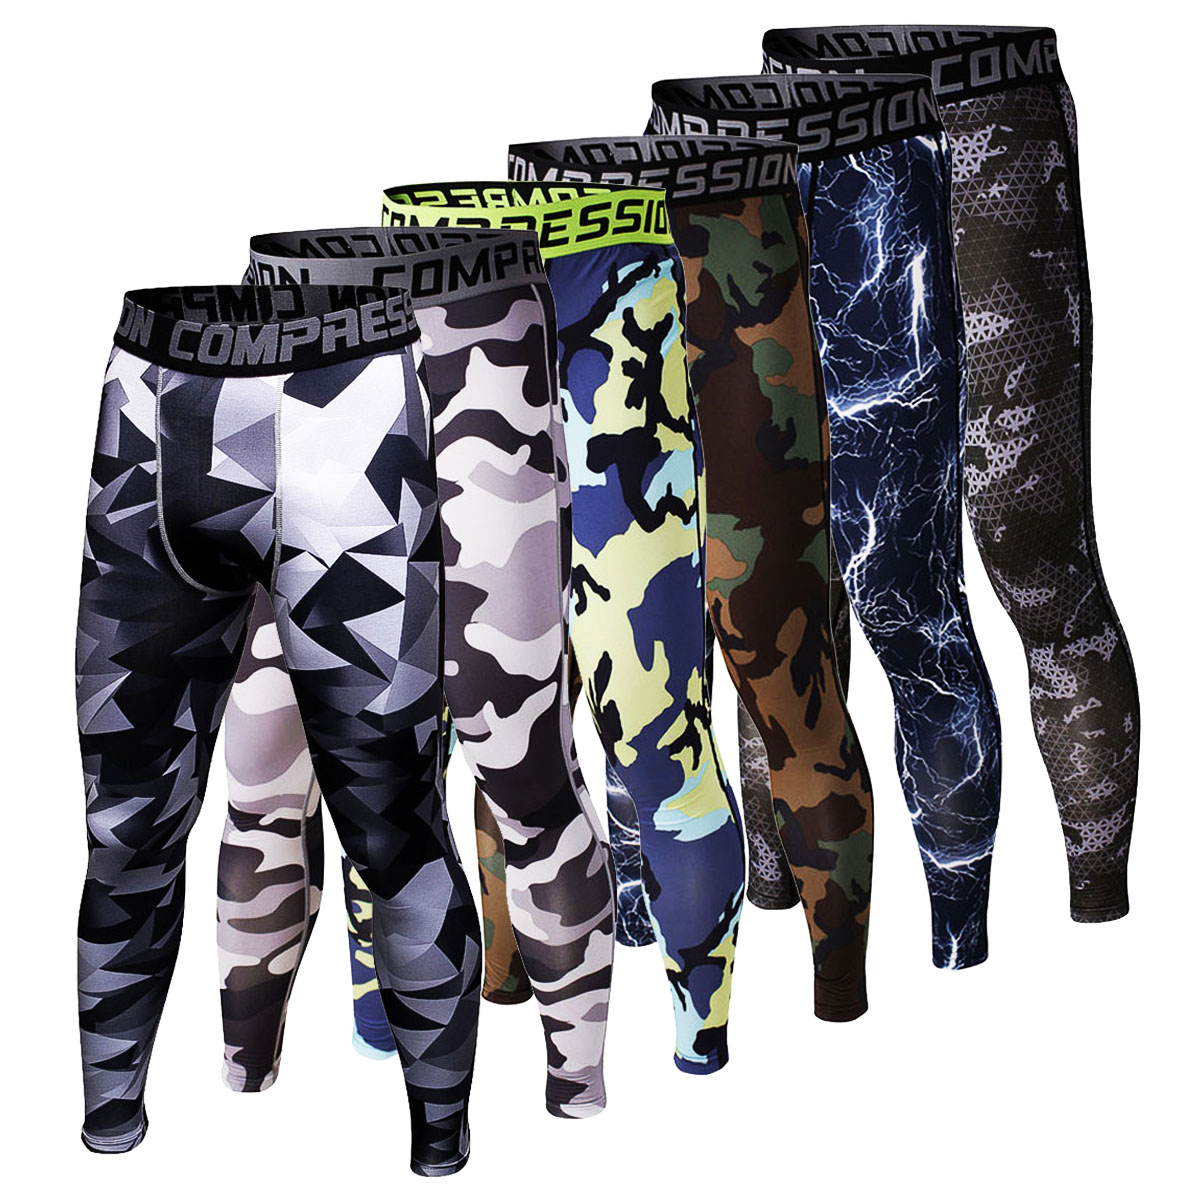 Camouflage 3D Print Mens Compression Pants Fashion Jogger Collant - Abbigliamento da uomo - Fotografia 2